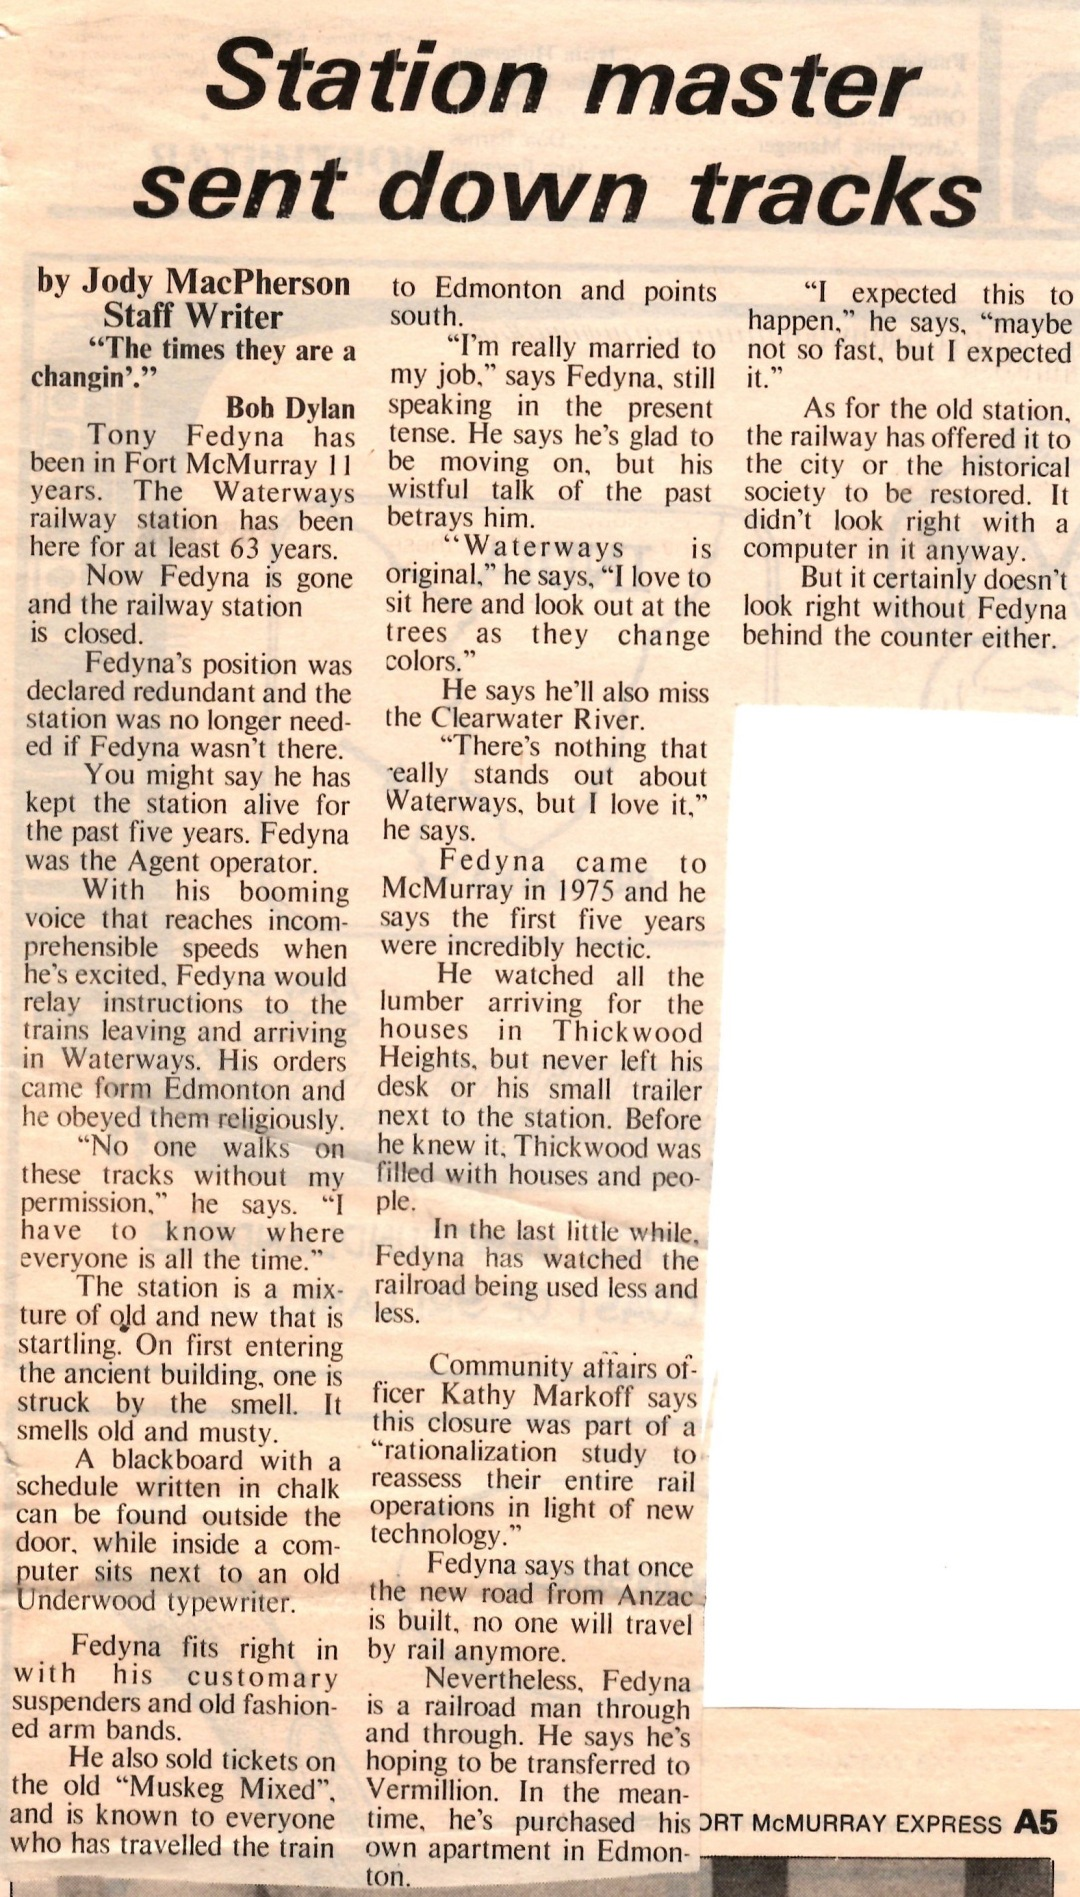 Newspaper clipping from Fort McMurray Express September 3, 1986